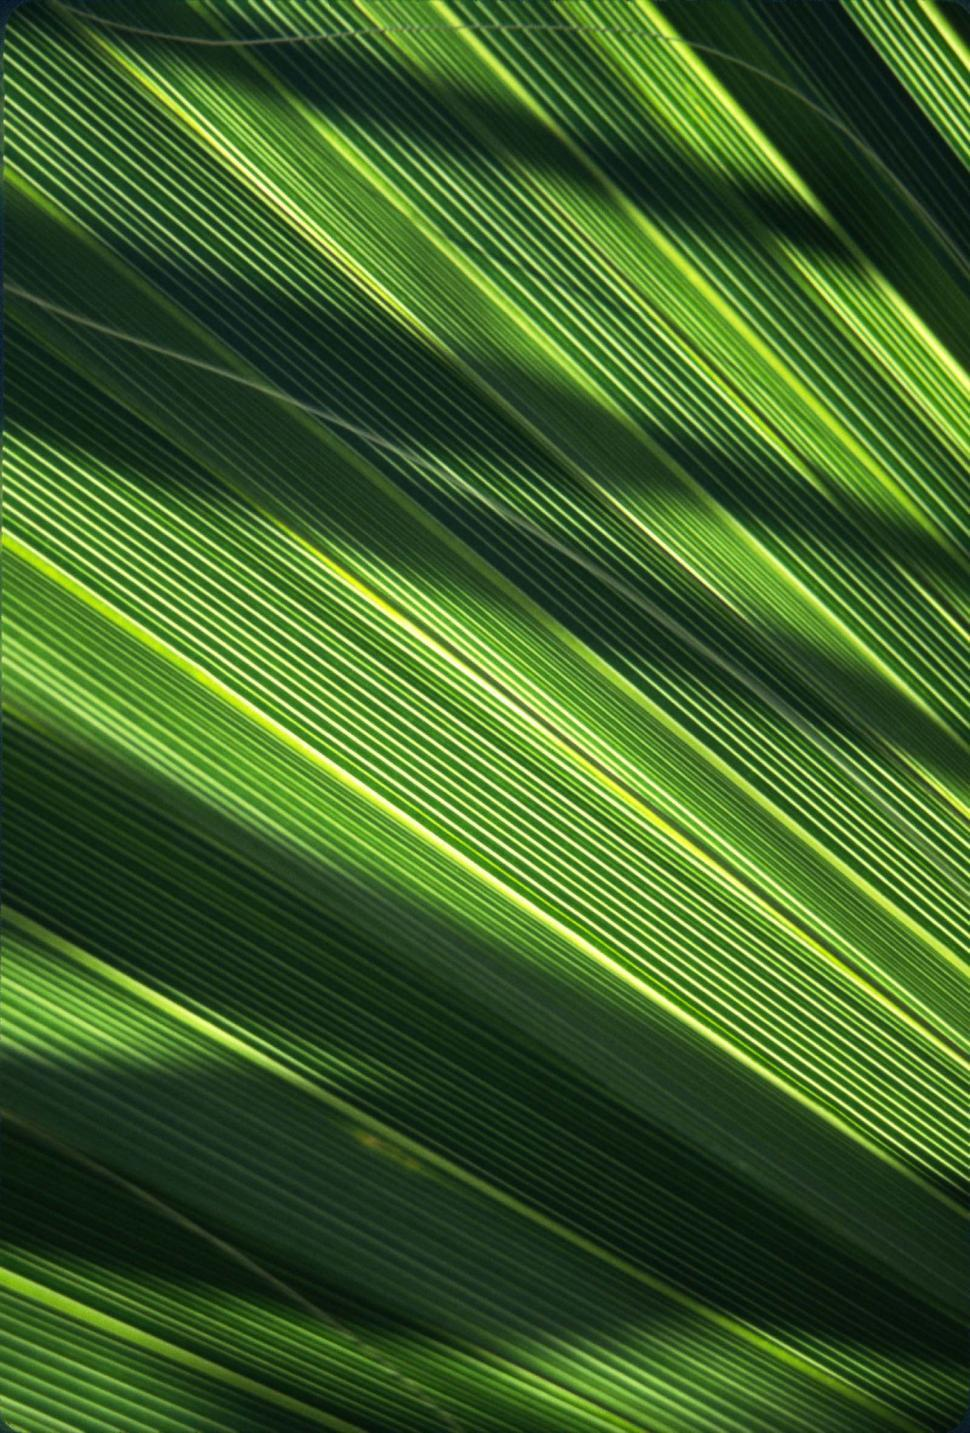 Download Free Stock HD Photo of Palm frond background Online